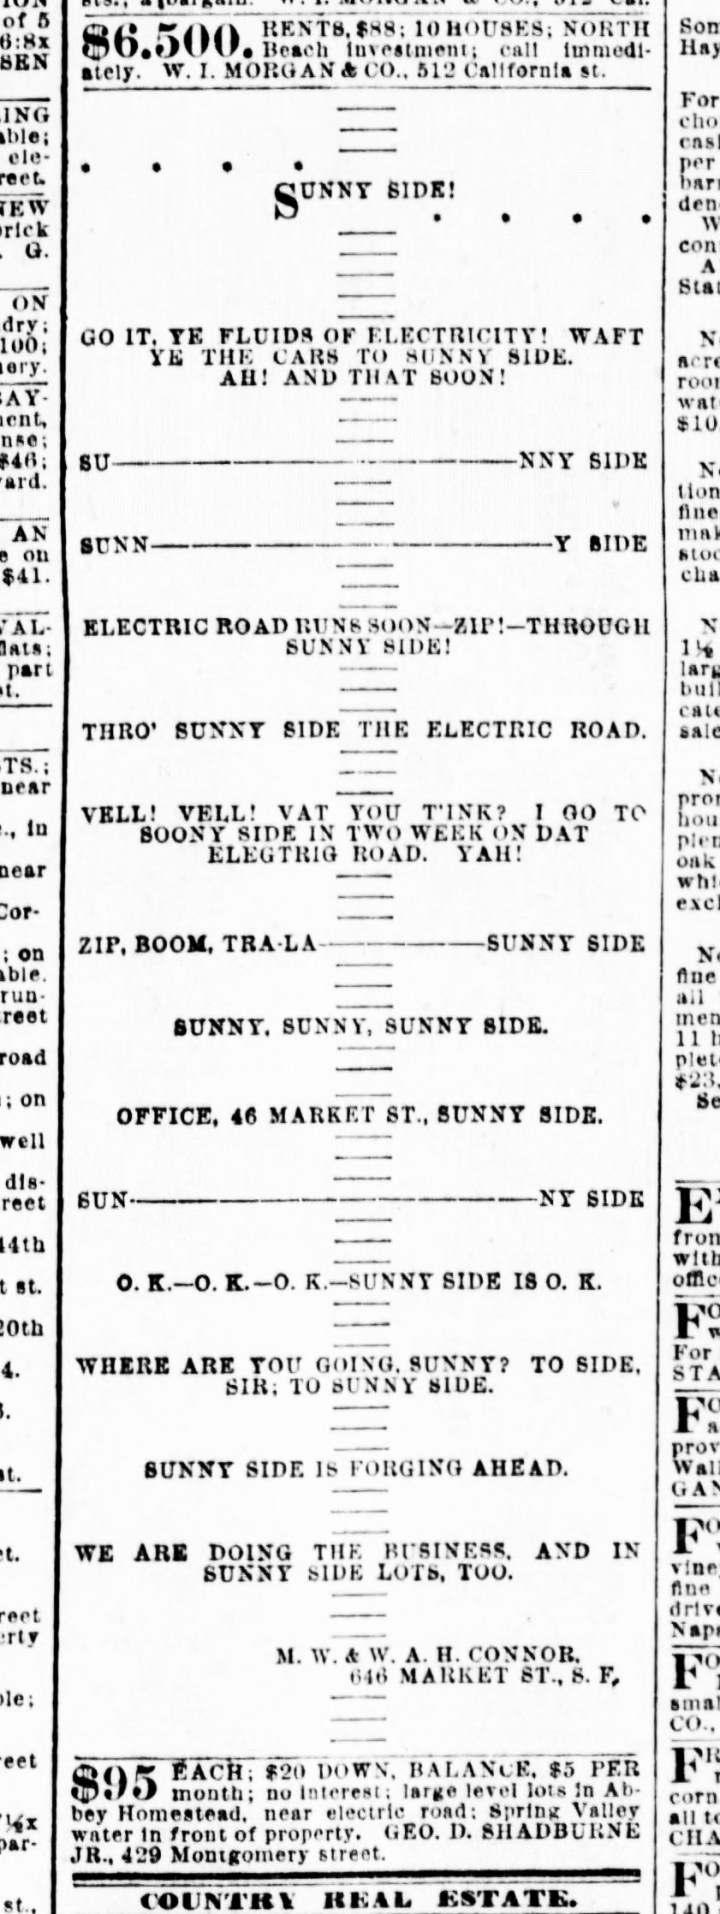 1892Apr10-Examiner-Sunnyside-classified-AD